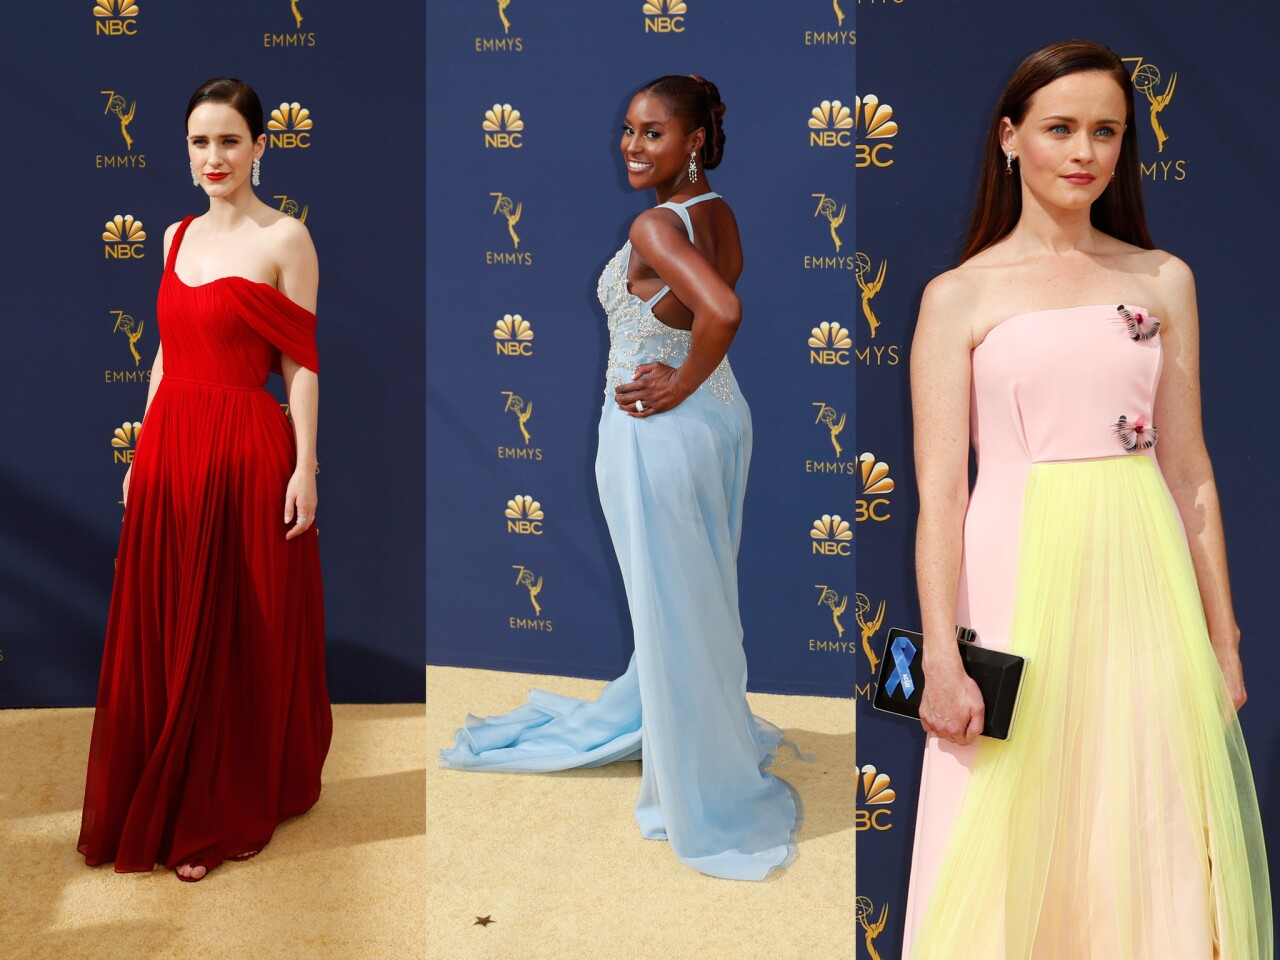 Red carpet looks: Stay with us as we list the best and worst dressed at the 2018 Emmys.